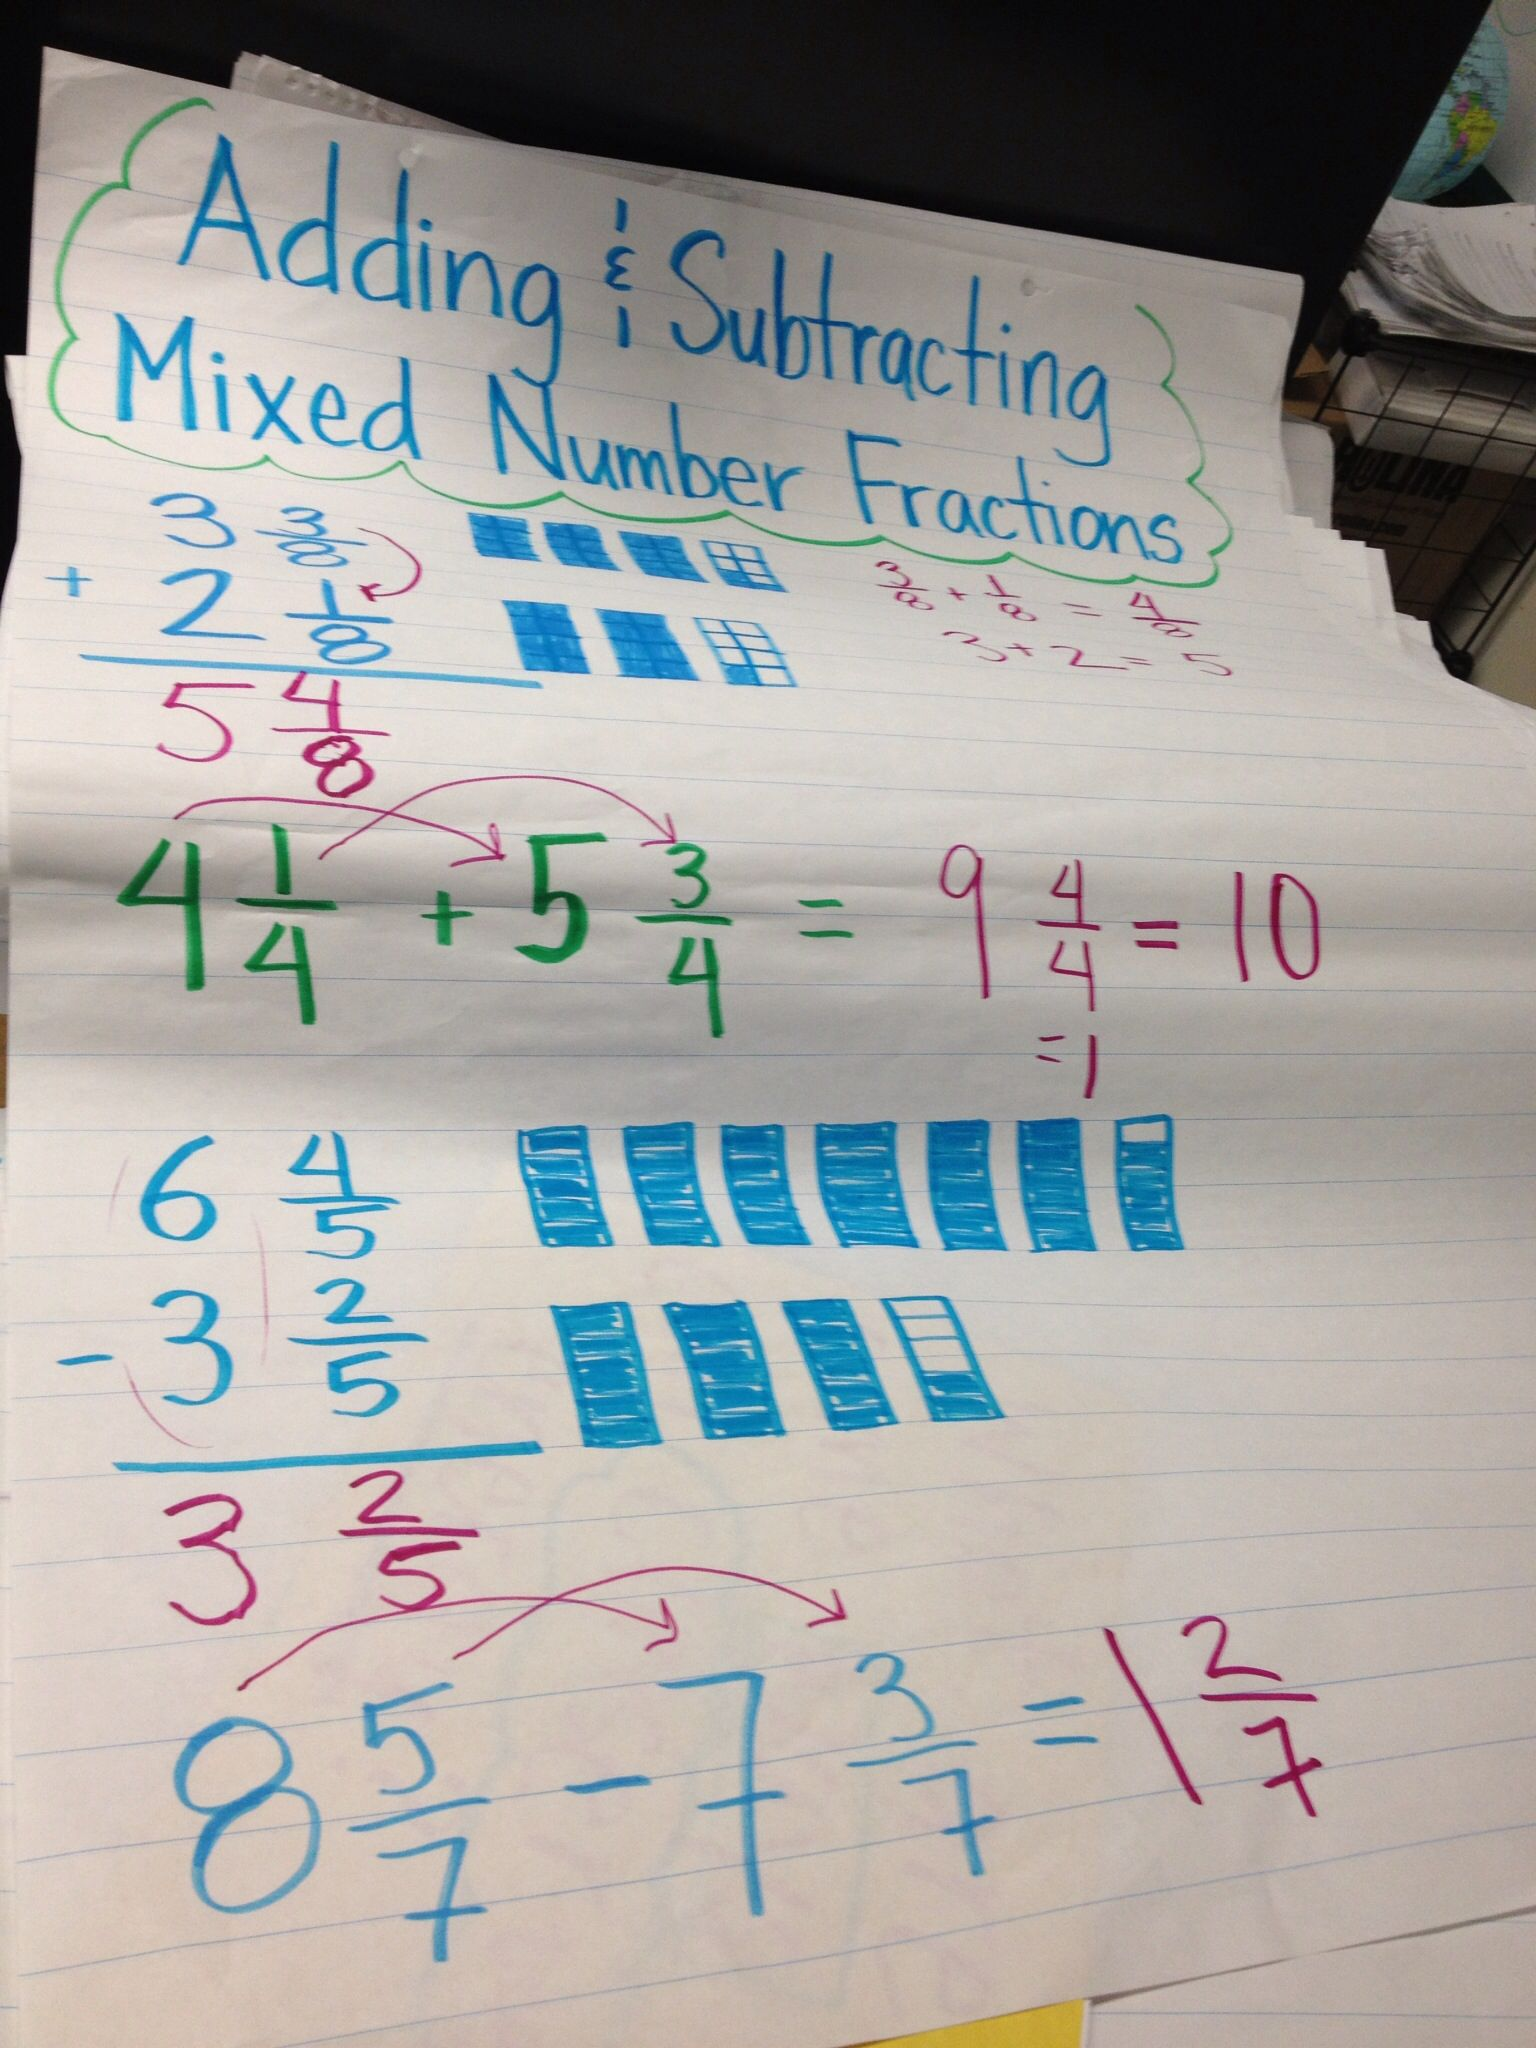 Adding And Subtracting Mixed Number Fractions Learning Math Math Fractions Math Addition of fractions mixed numbers